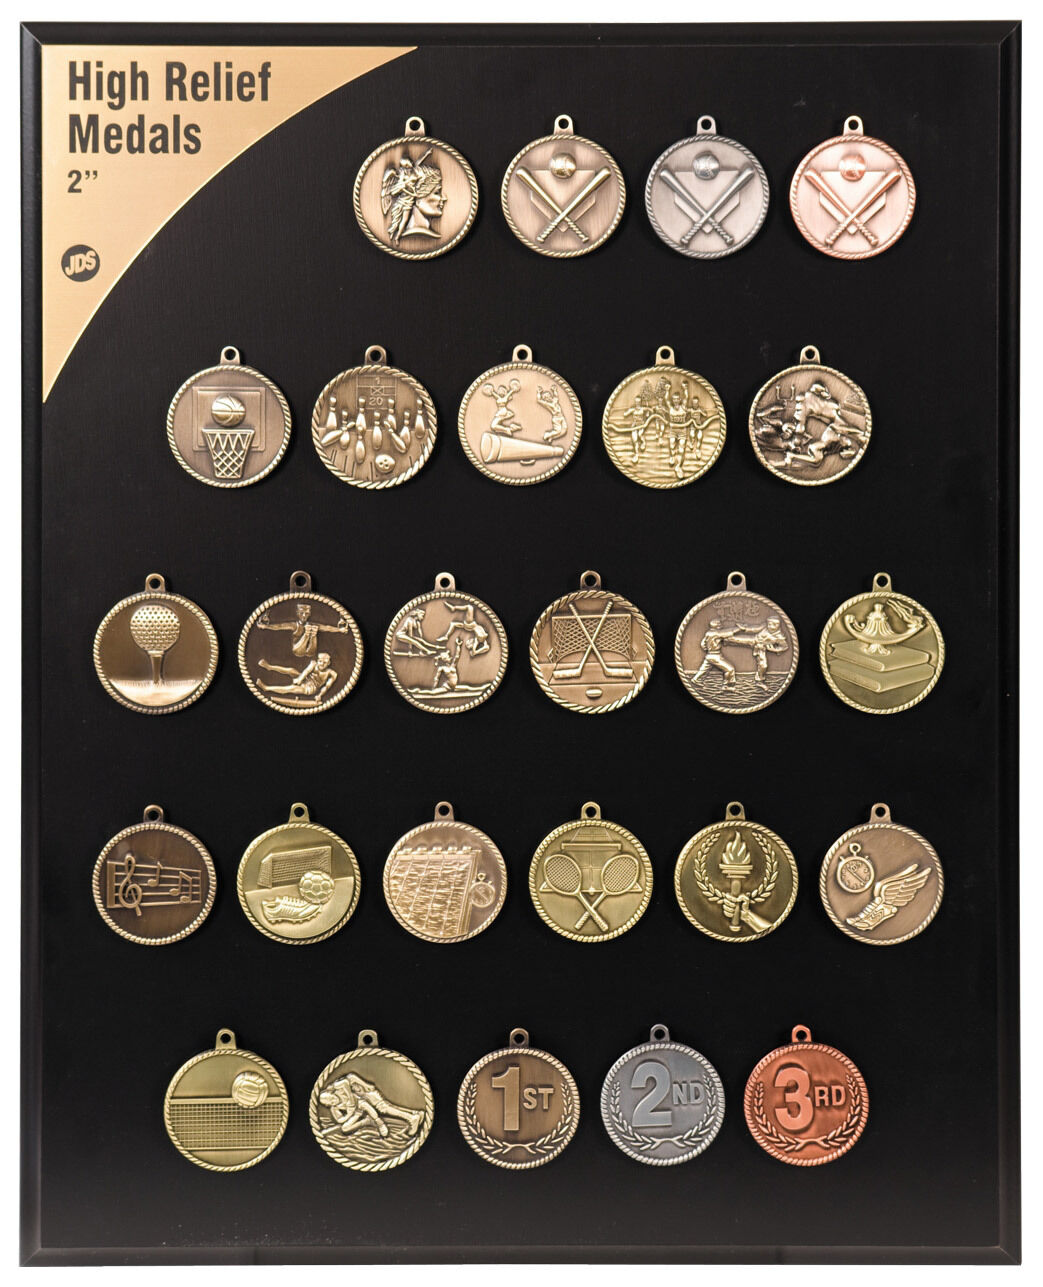 25pc lot Sports Activity Medal 2  High-Relief Medals FREE SHIPPING